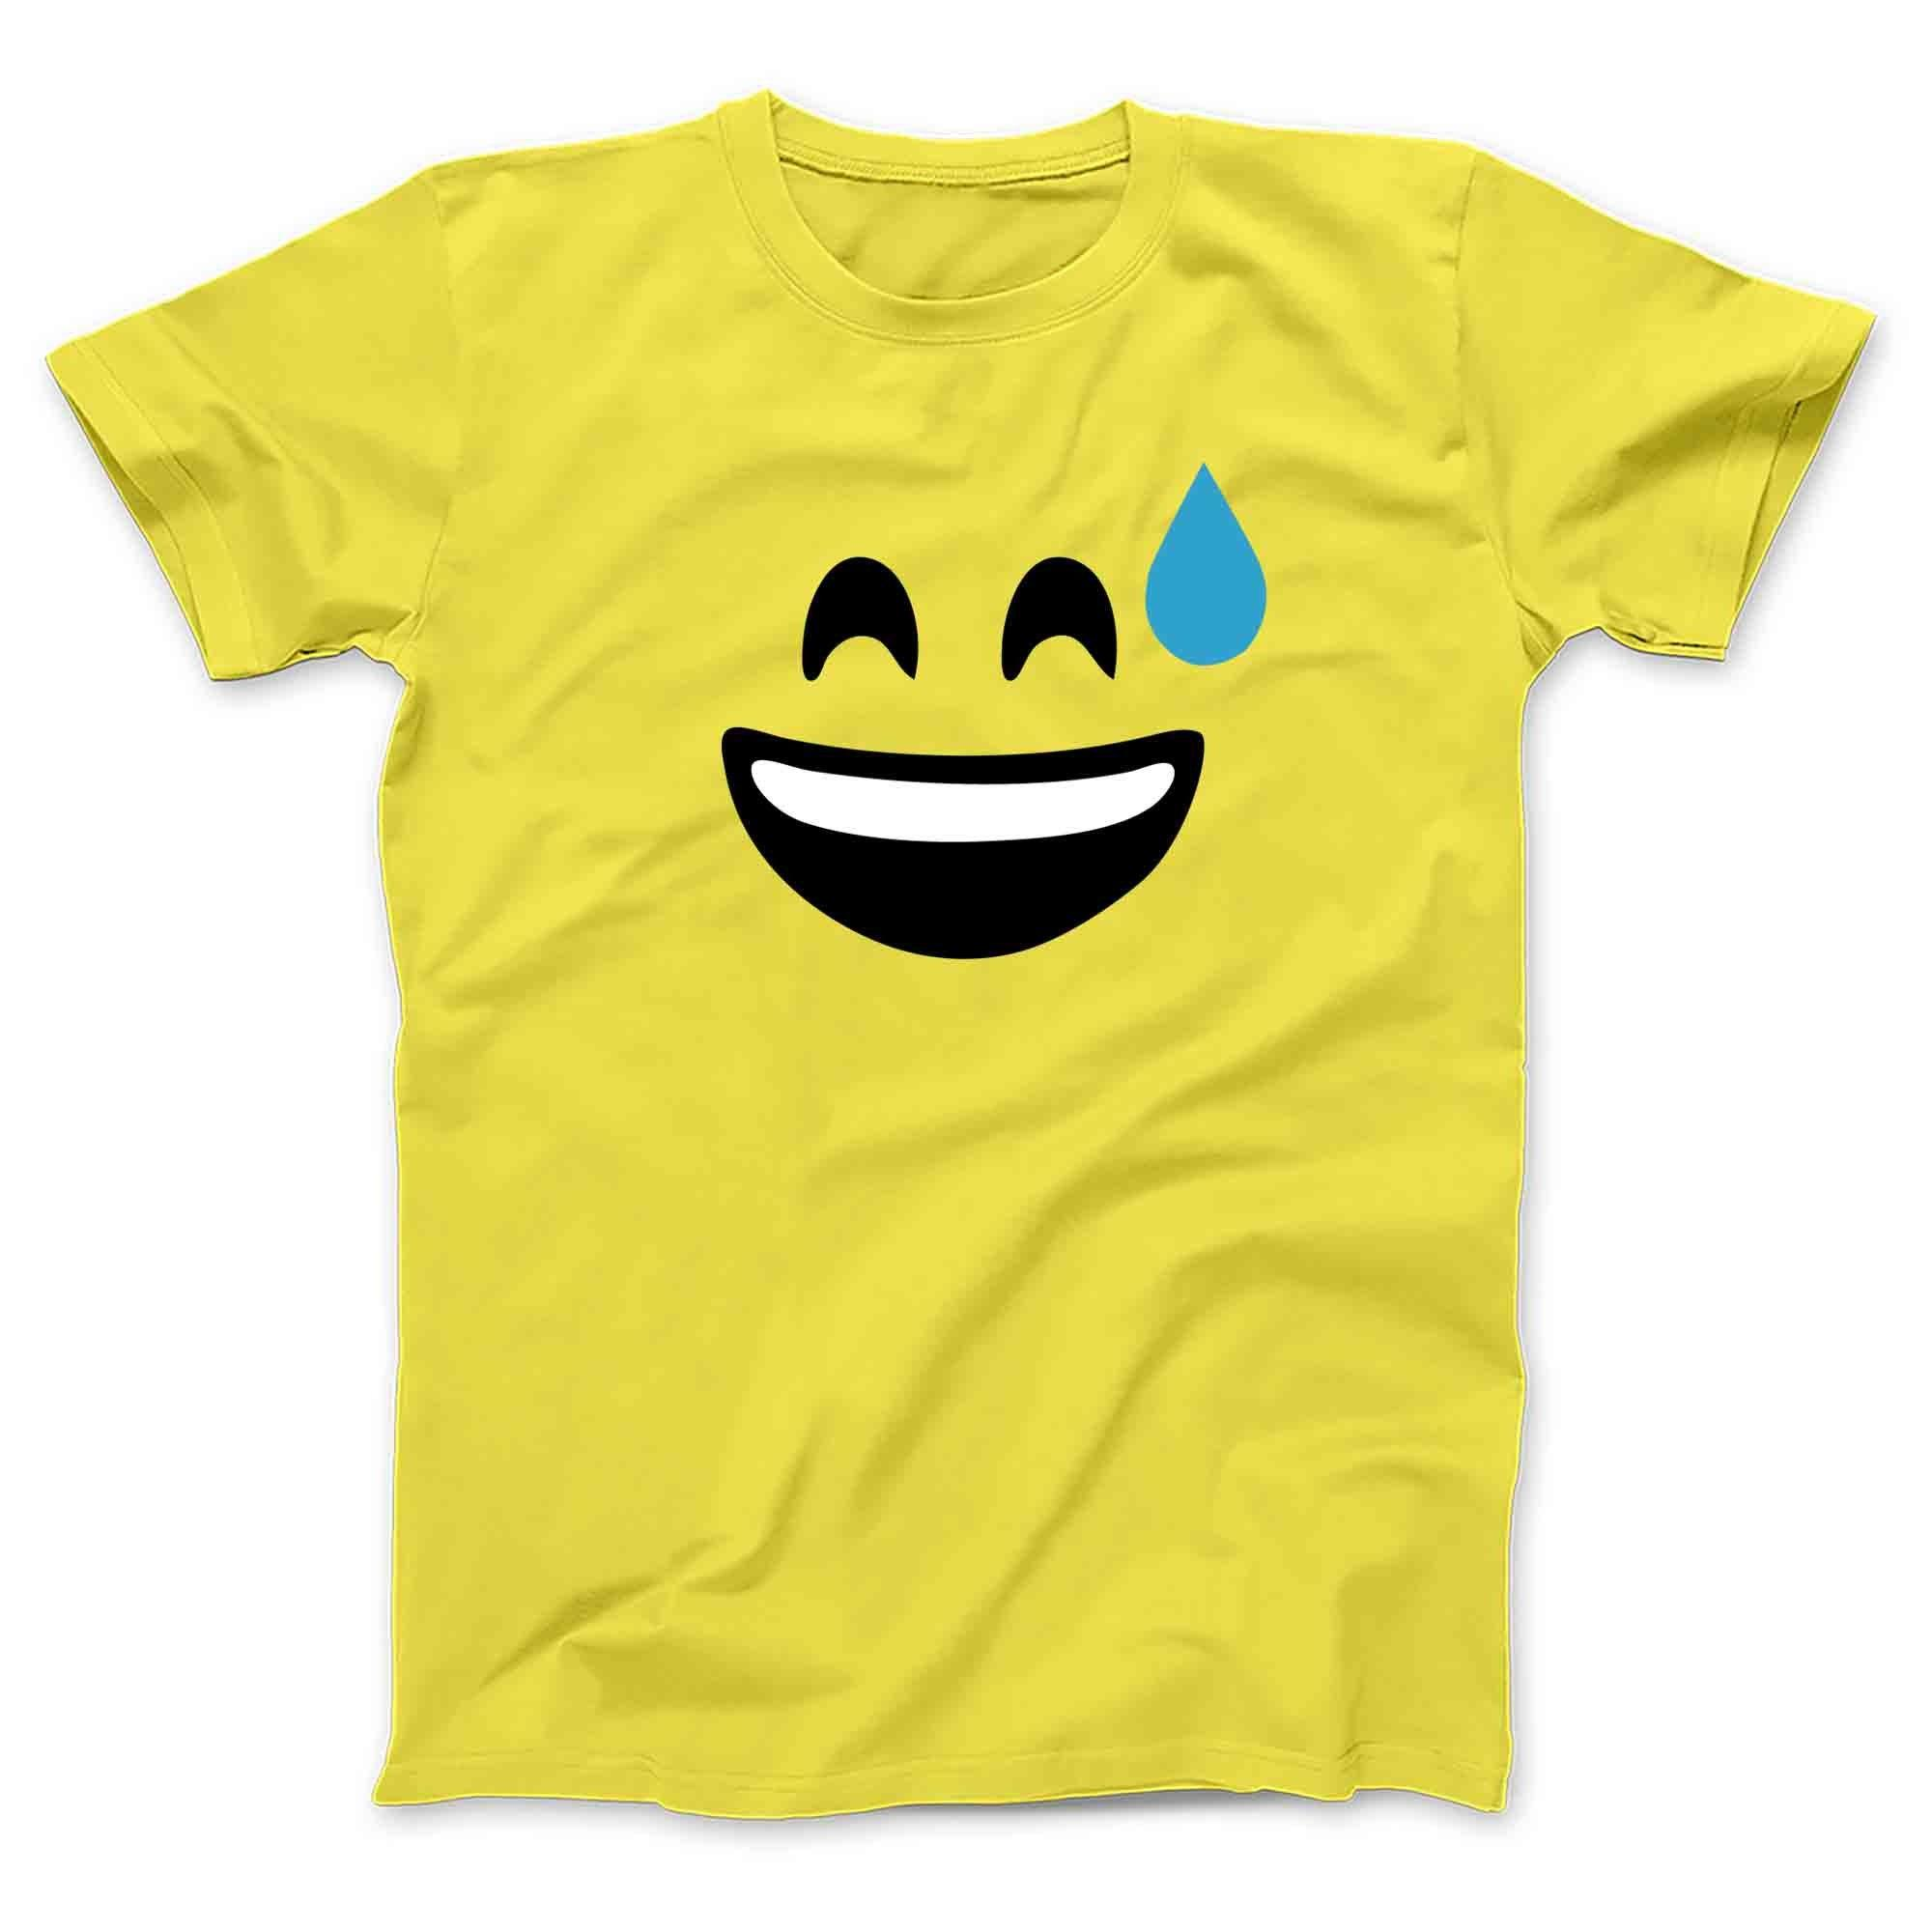 Smiley faces wink heart emoji - size xs